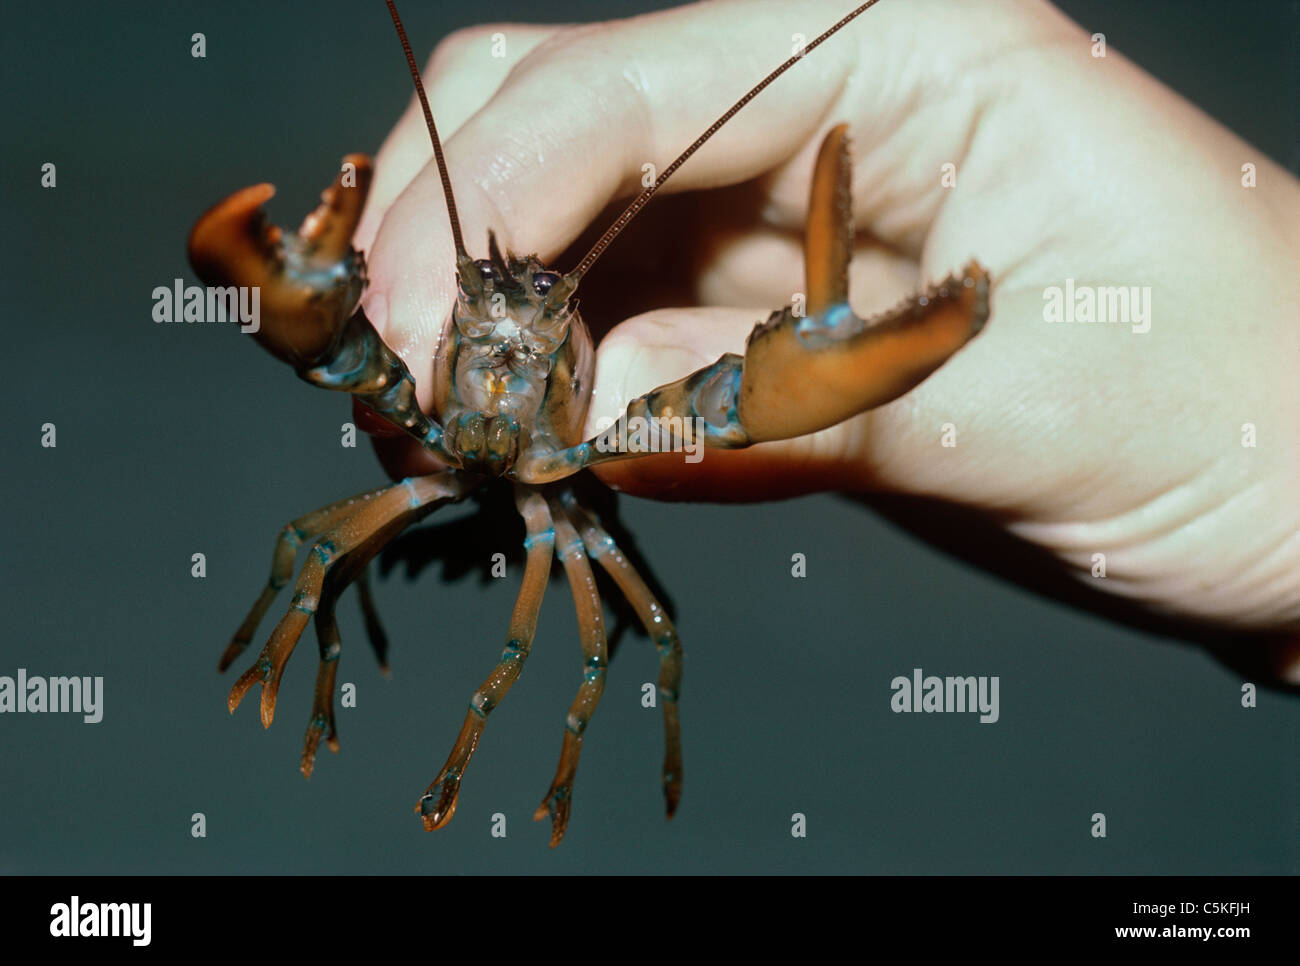 A two-year old American Lobster (Homarus americanus). Woods Hole Oceanographic Institution, Woods Hole, Massachusetts, - Stock Image